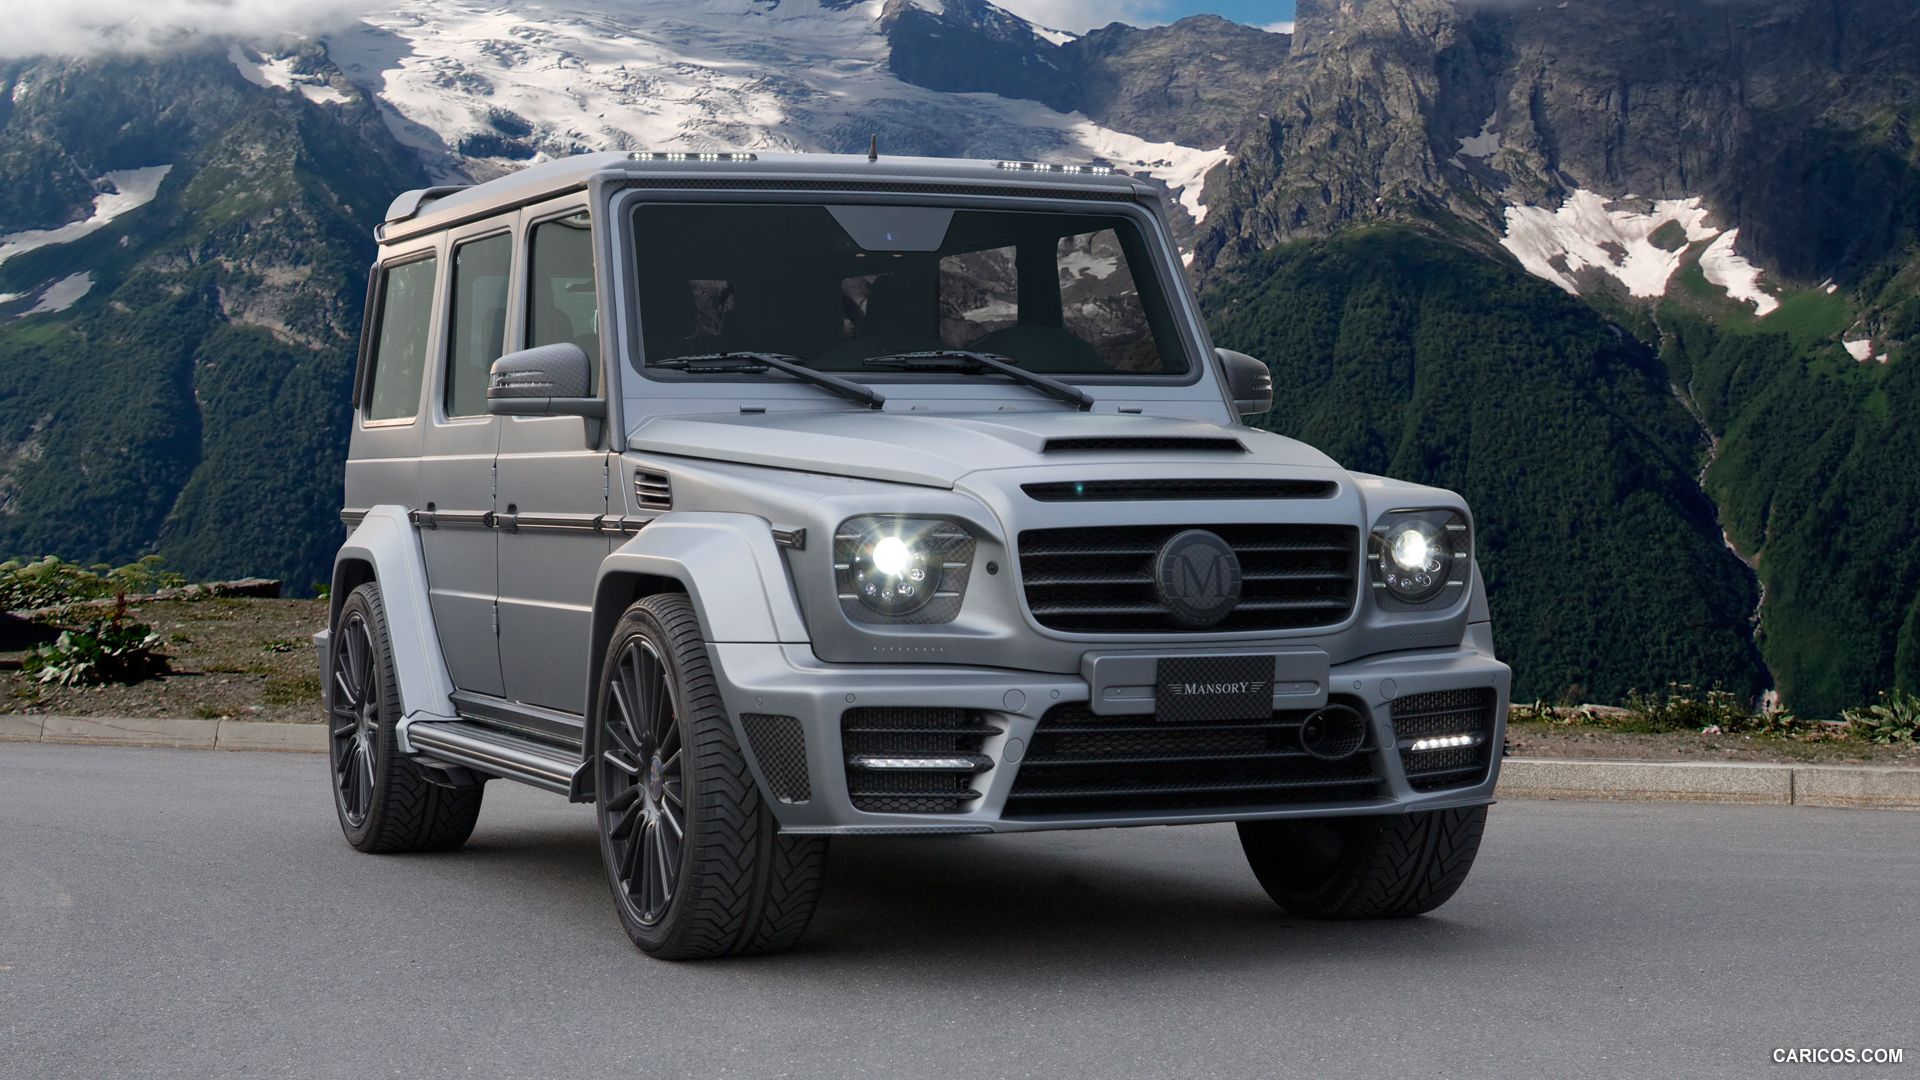 2014 Mercedes-Benz G Wagon AMG Wallpapers - Top Free 2014 ...